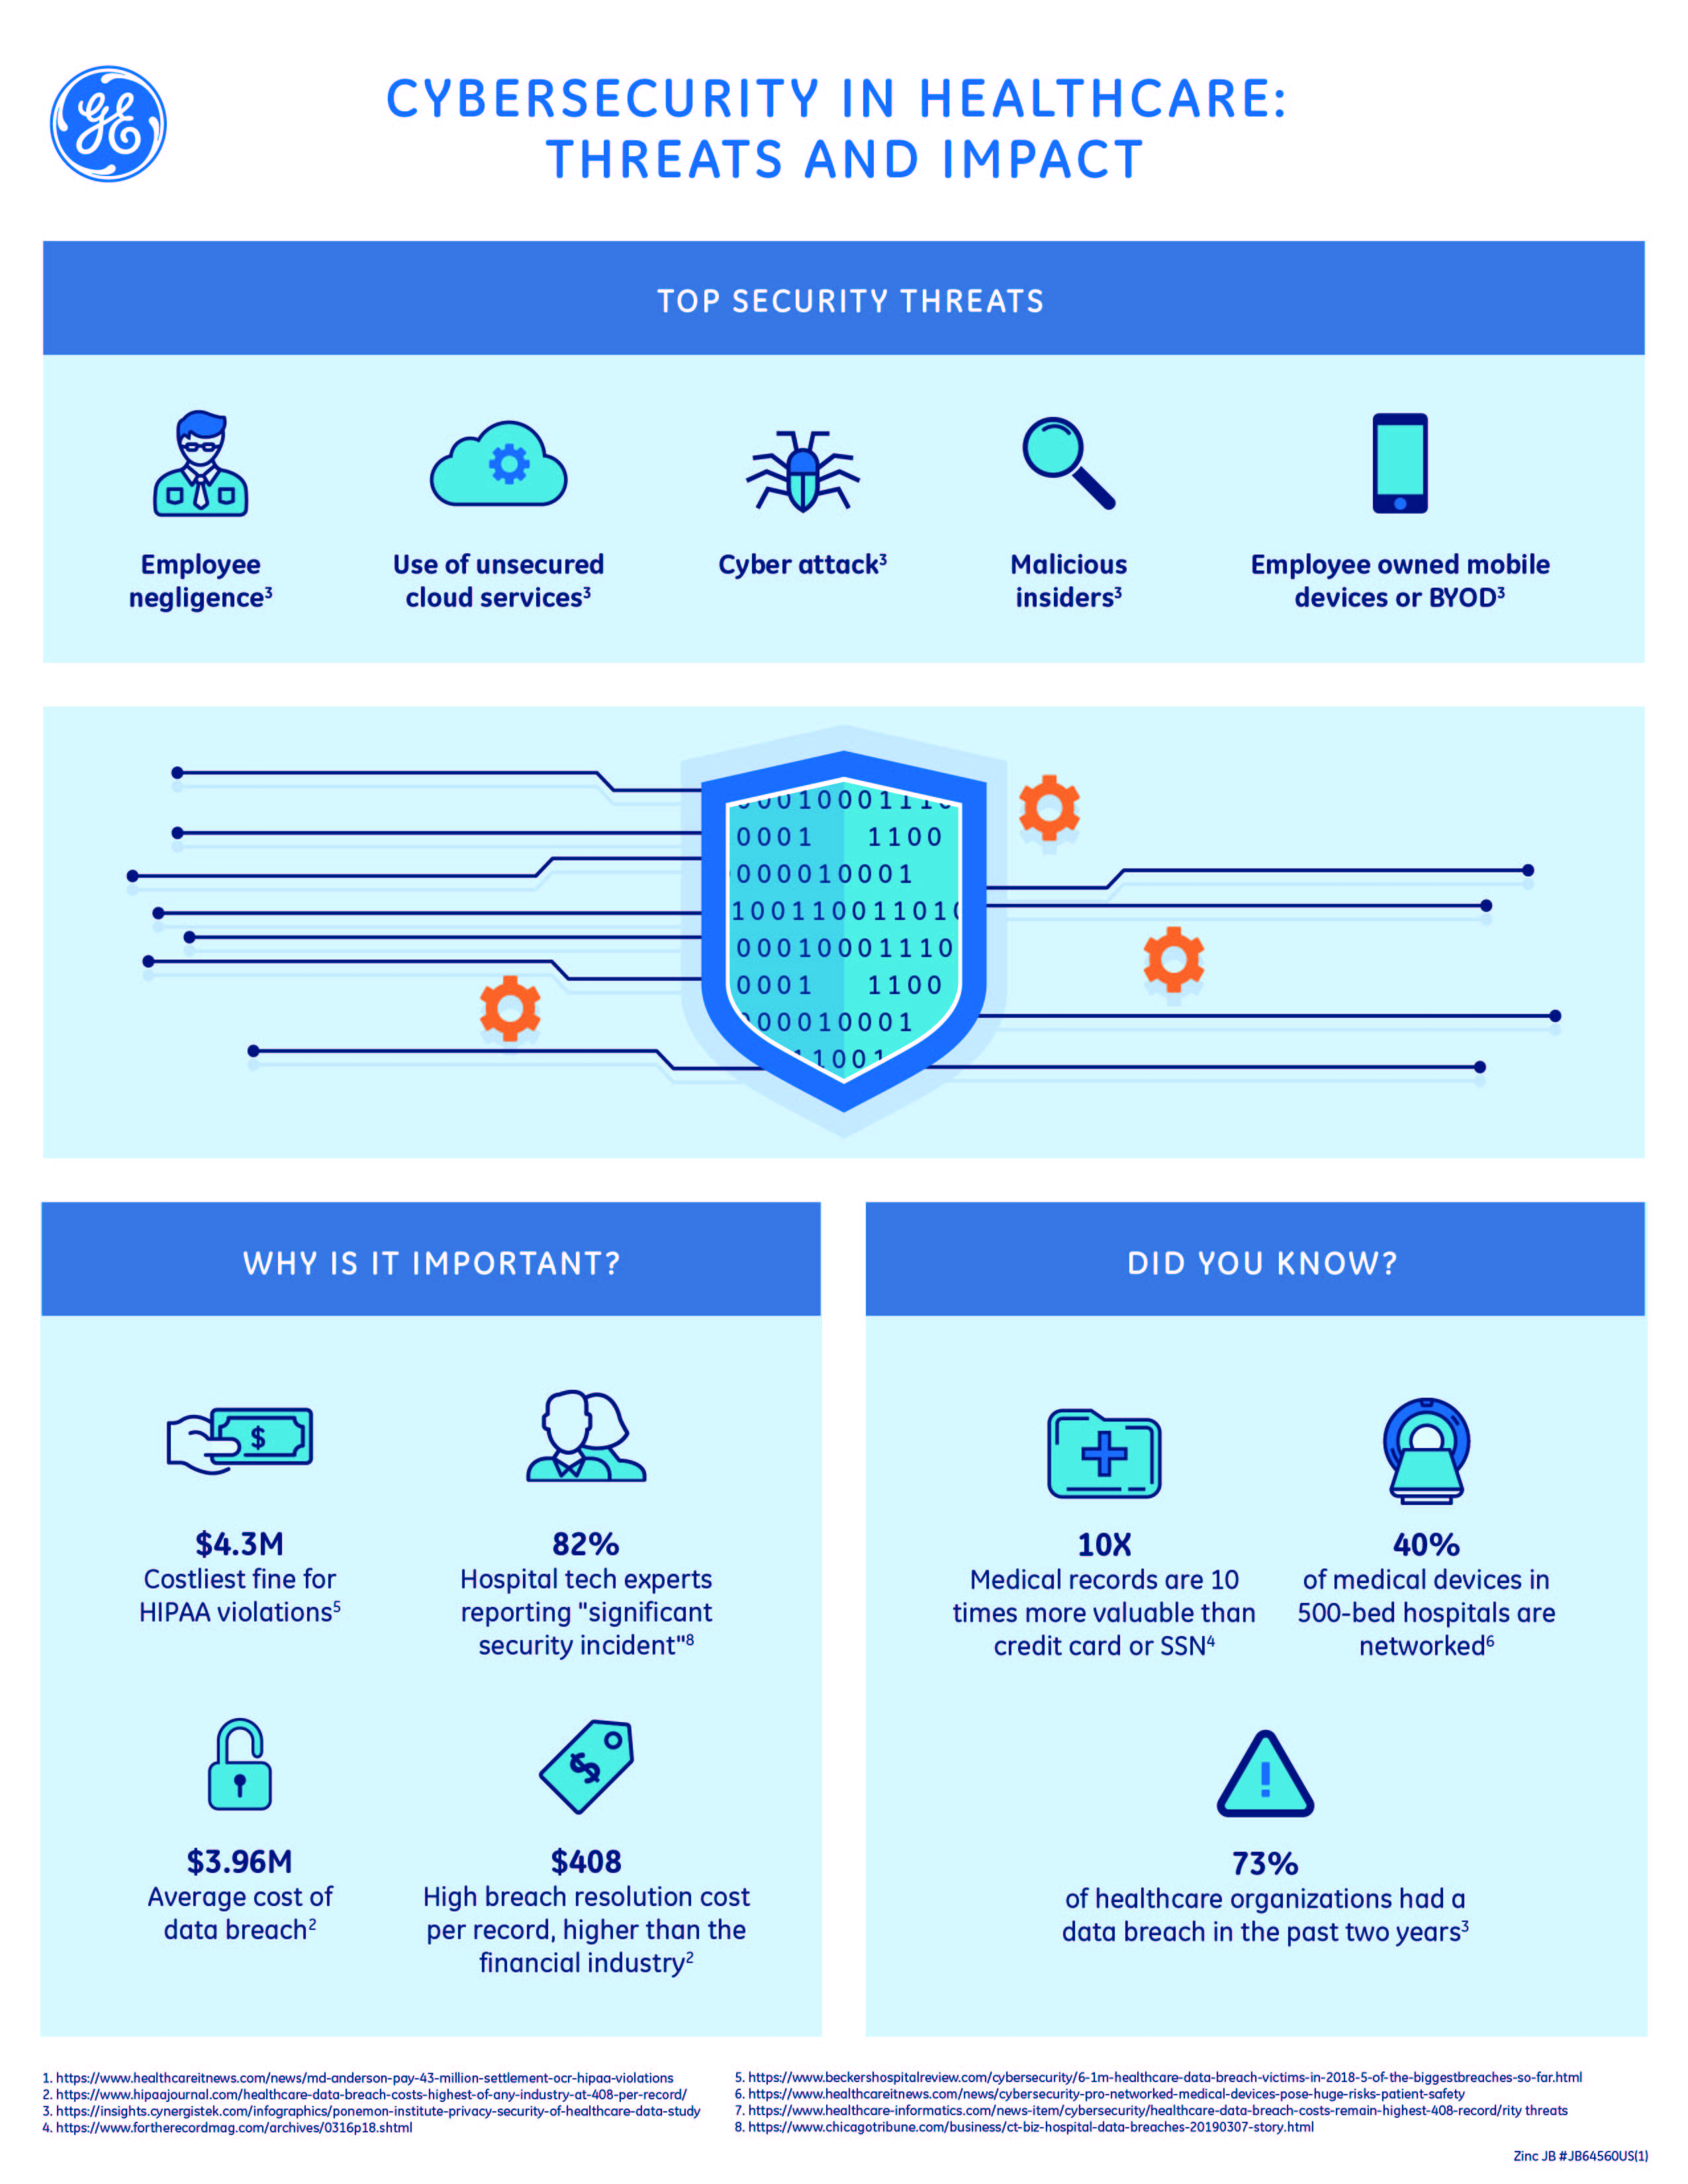 GE_Cybersecurity_Infographic_v3-01.jpg